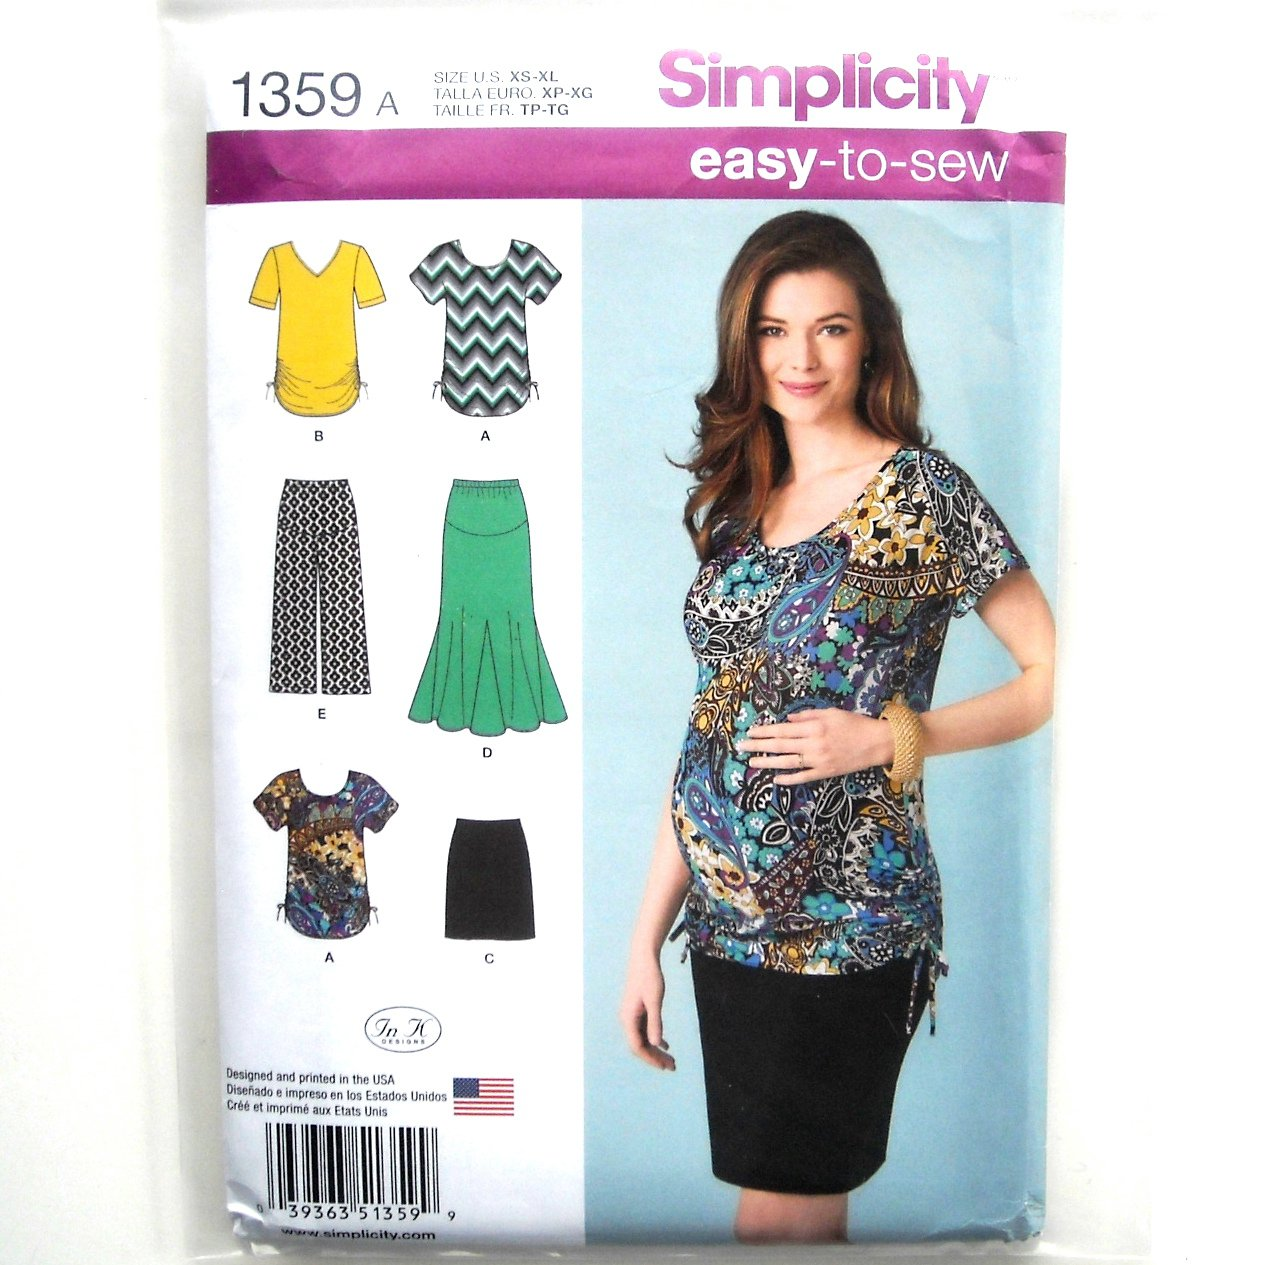 Misses Maternity Skirt Top Pants XS - XL Easy Simplicity Sewing Pattern 1359